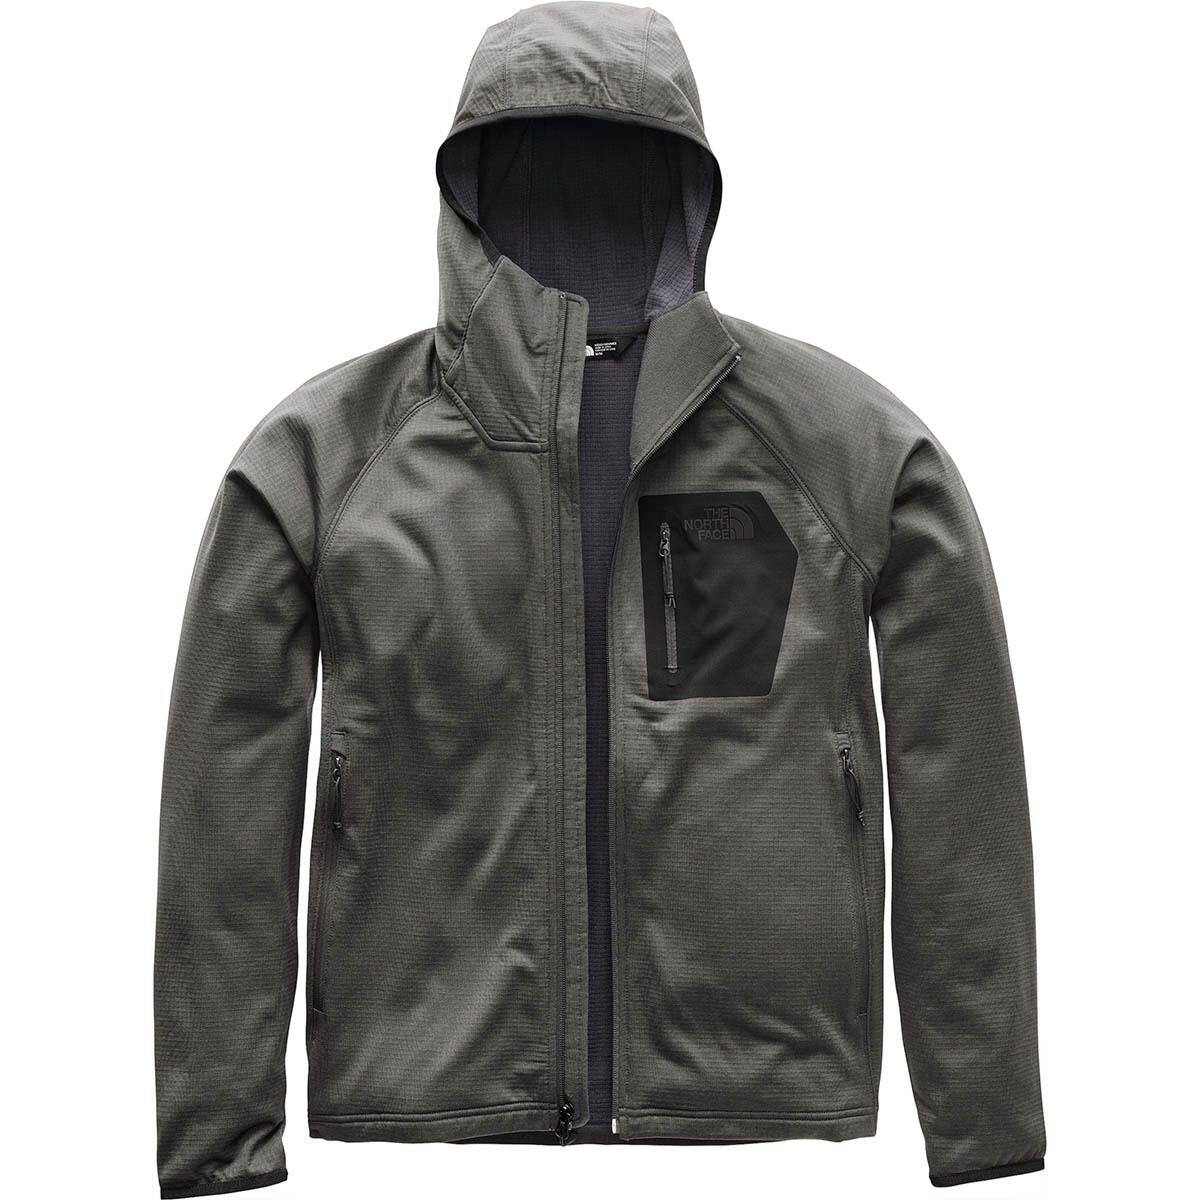 The North Face Men's Borod Hooded Fleece Jacket $59.35 + Free Shipping @ BackCountry